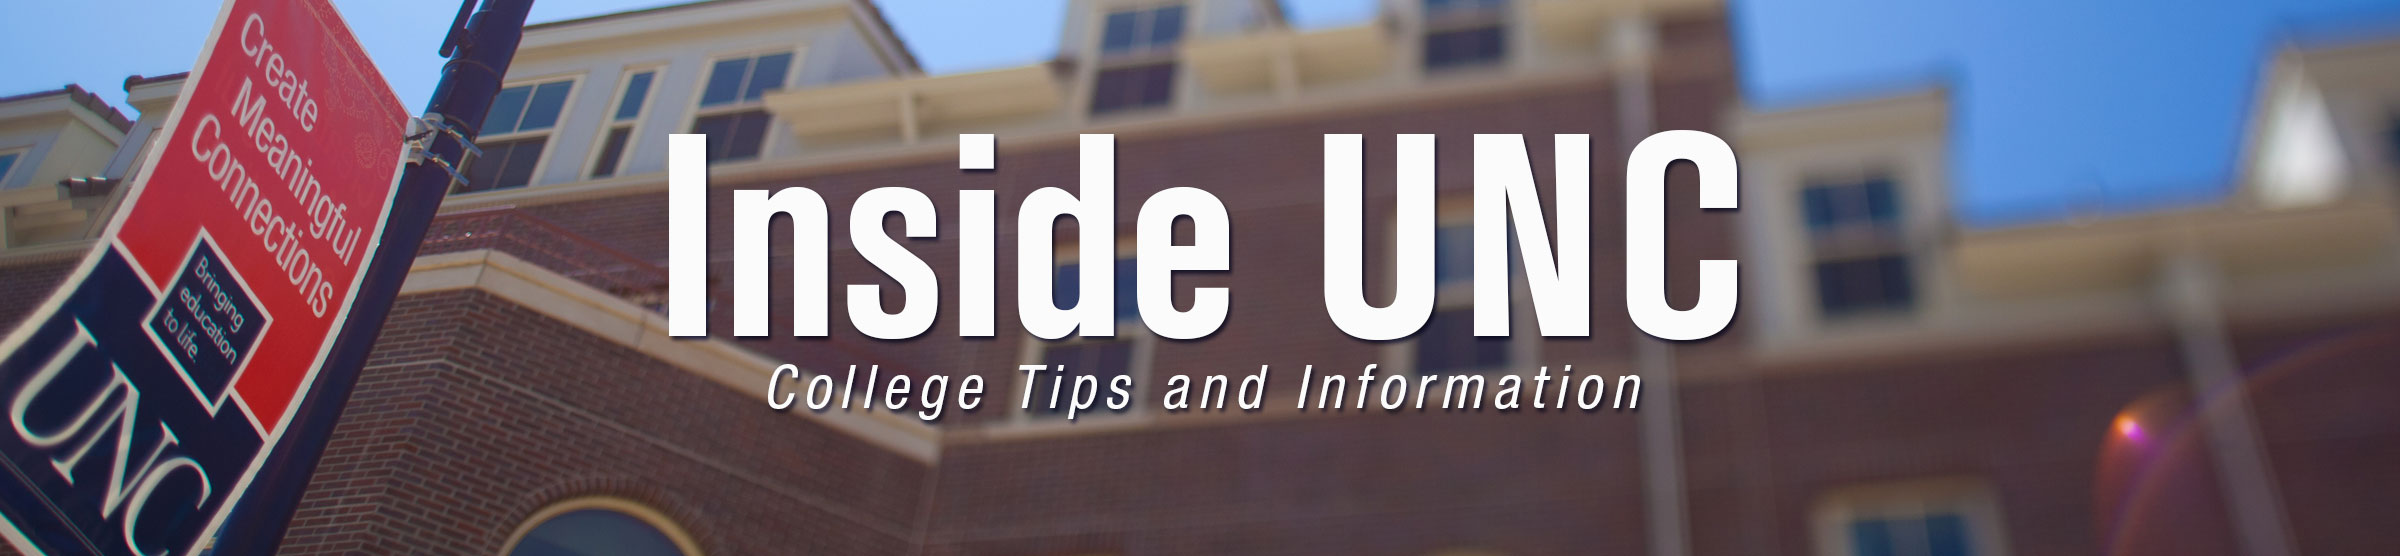 INSIDE UNC: College Tips and Information